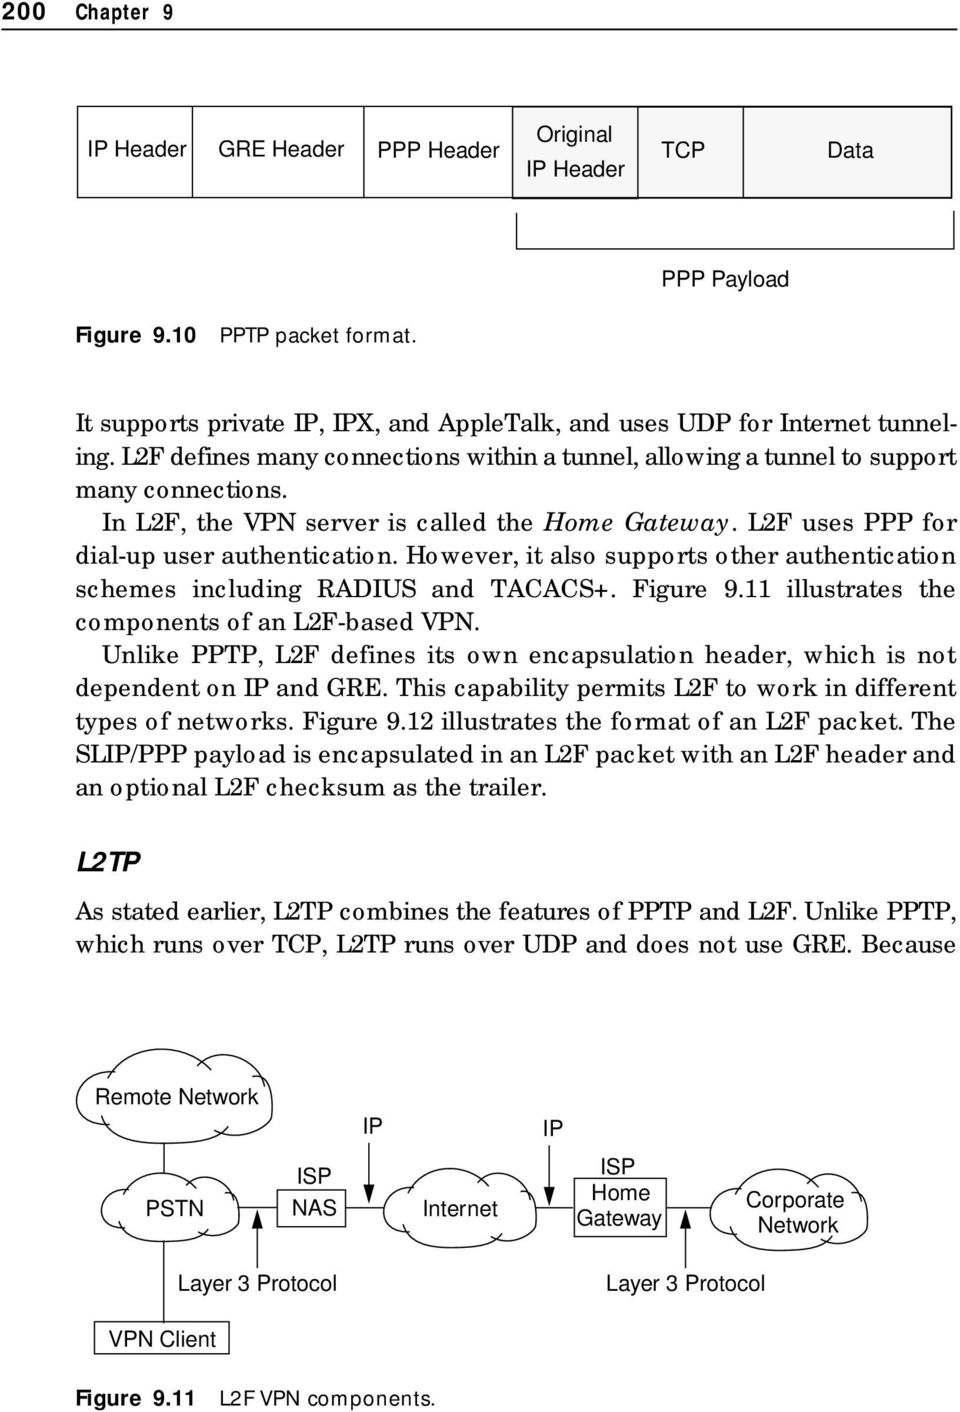 However, it also supports other authentication schemes including RADIUS and TACACS+. Figure 9.11 illustrates the components of an L2F-based VPN.